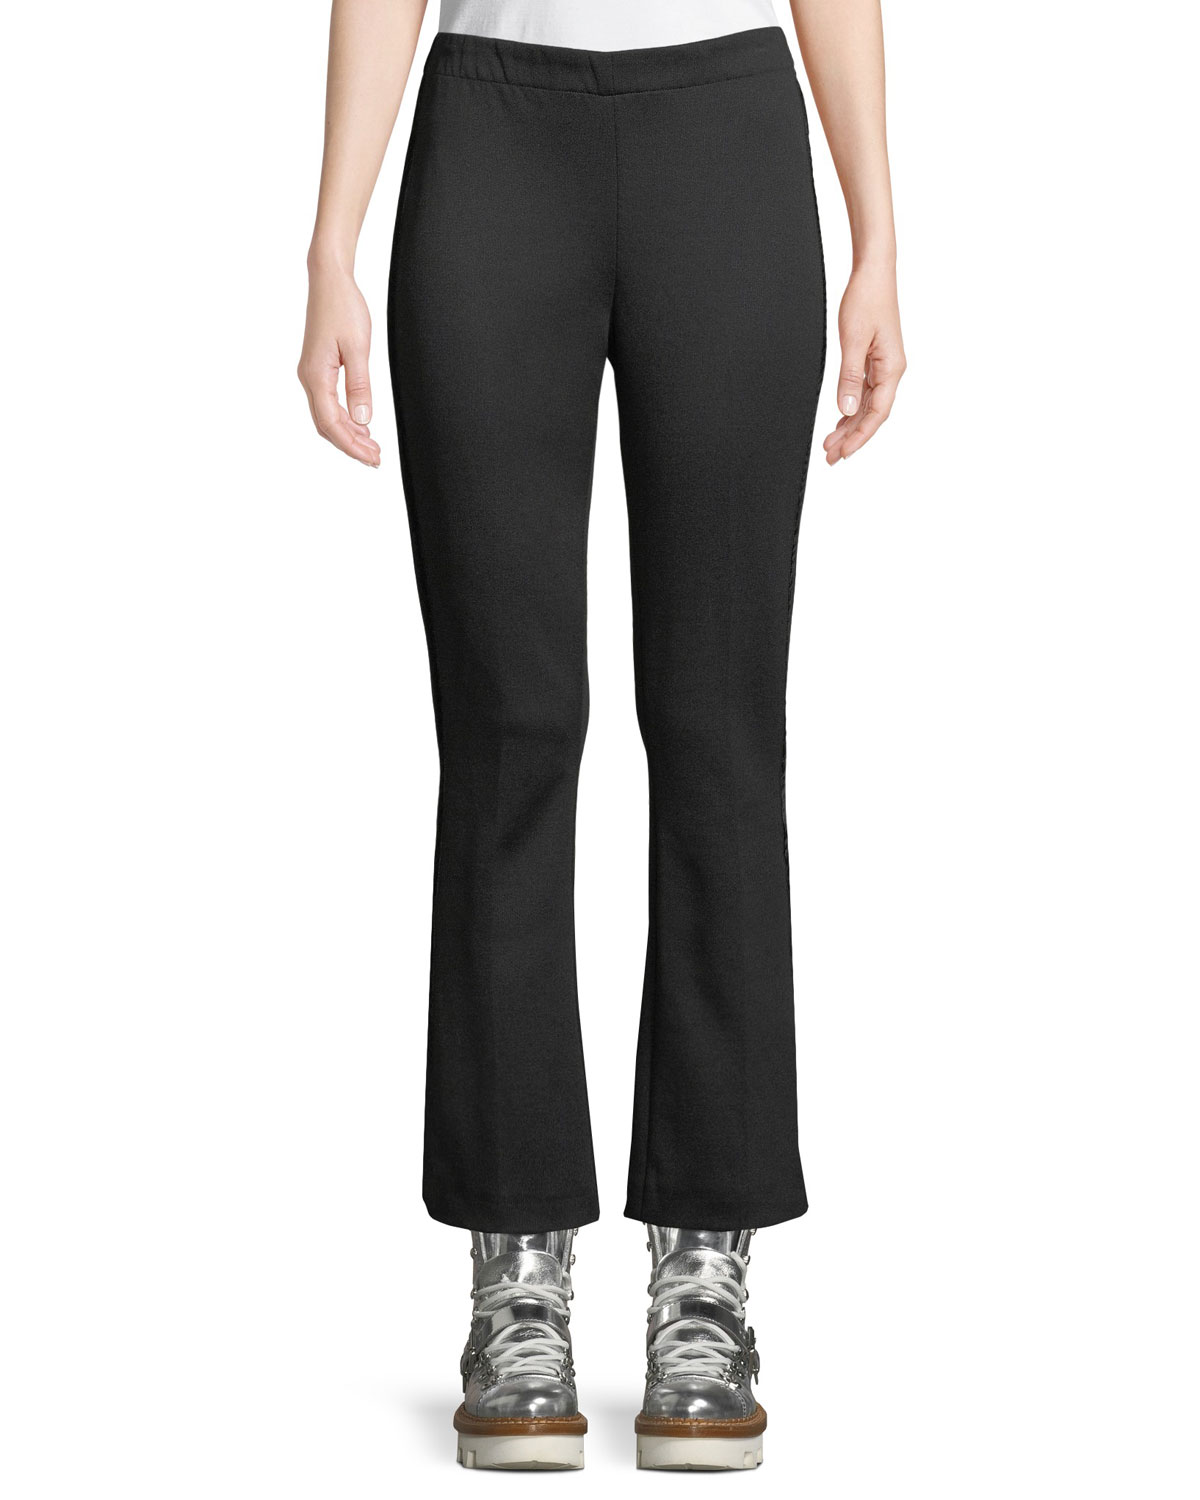 Tech Cropped Baby Boot-Cut Pants